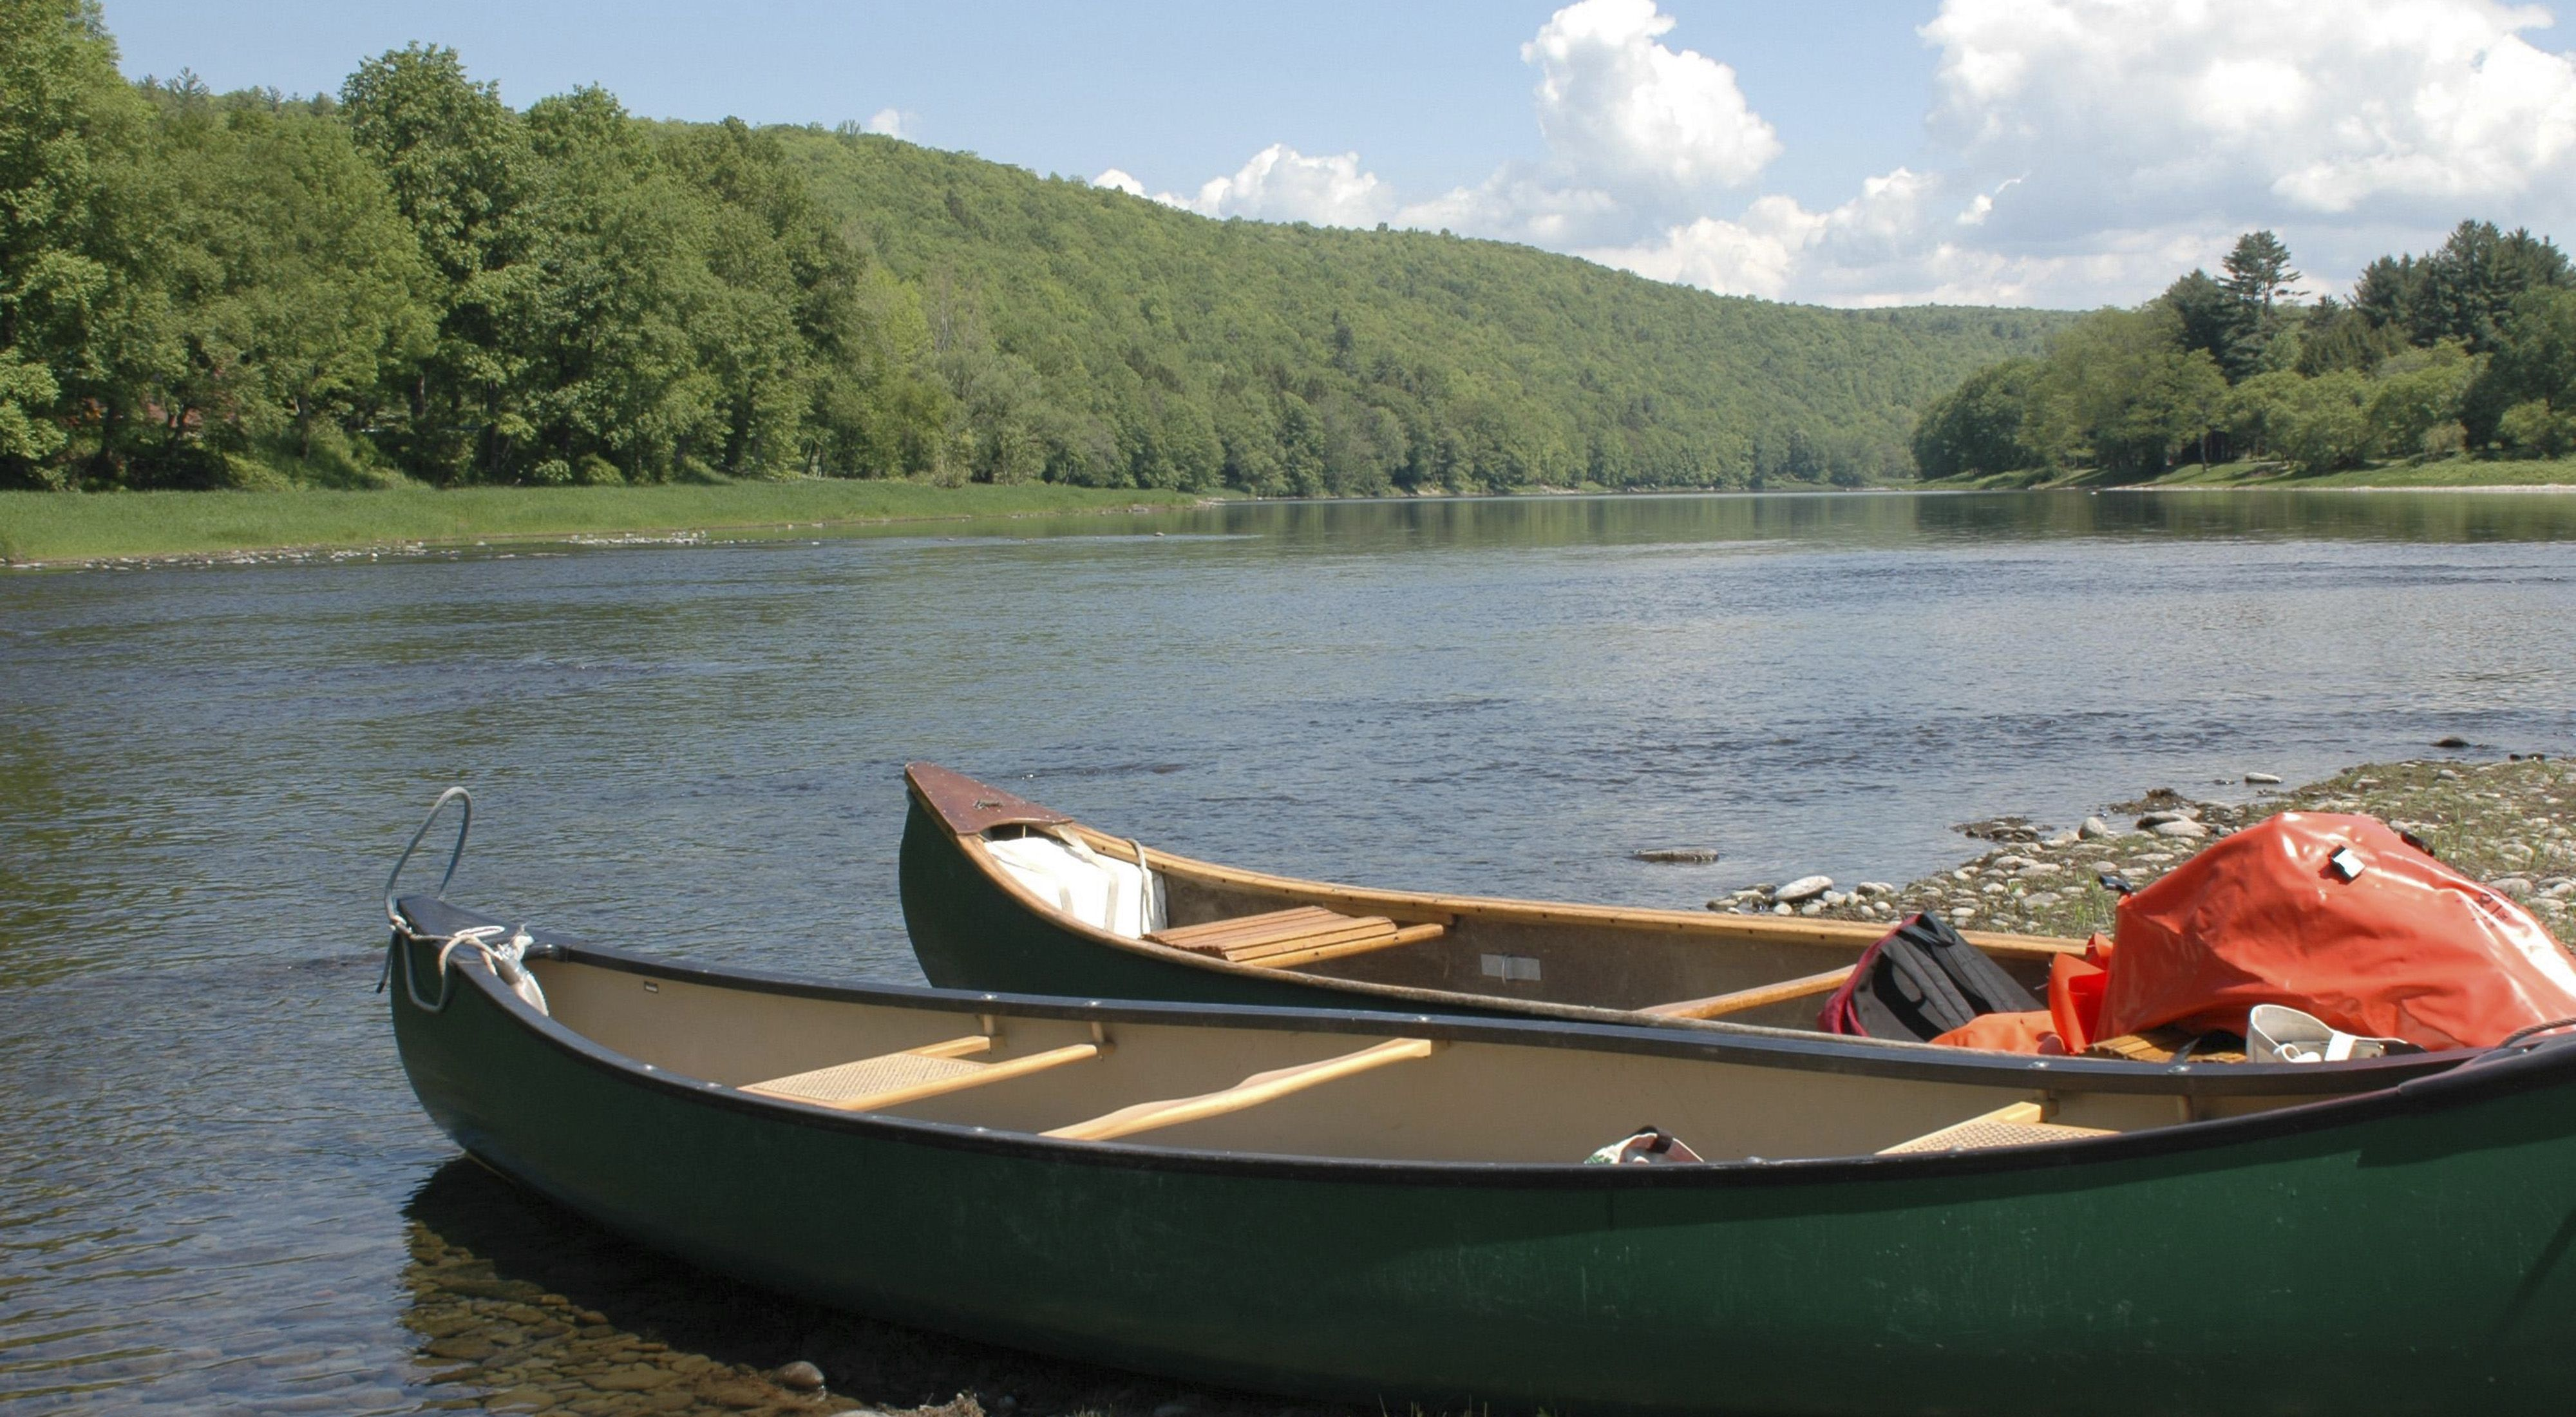 Two canoes sit on the side of a river bank.